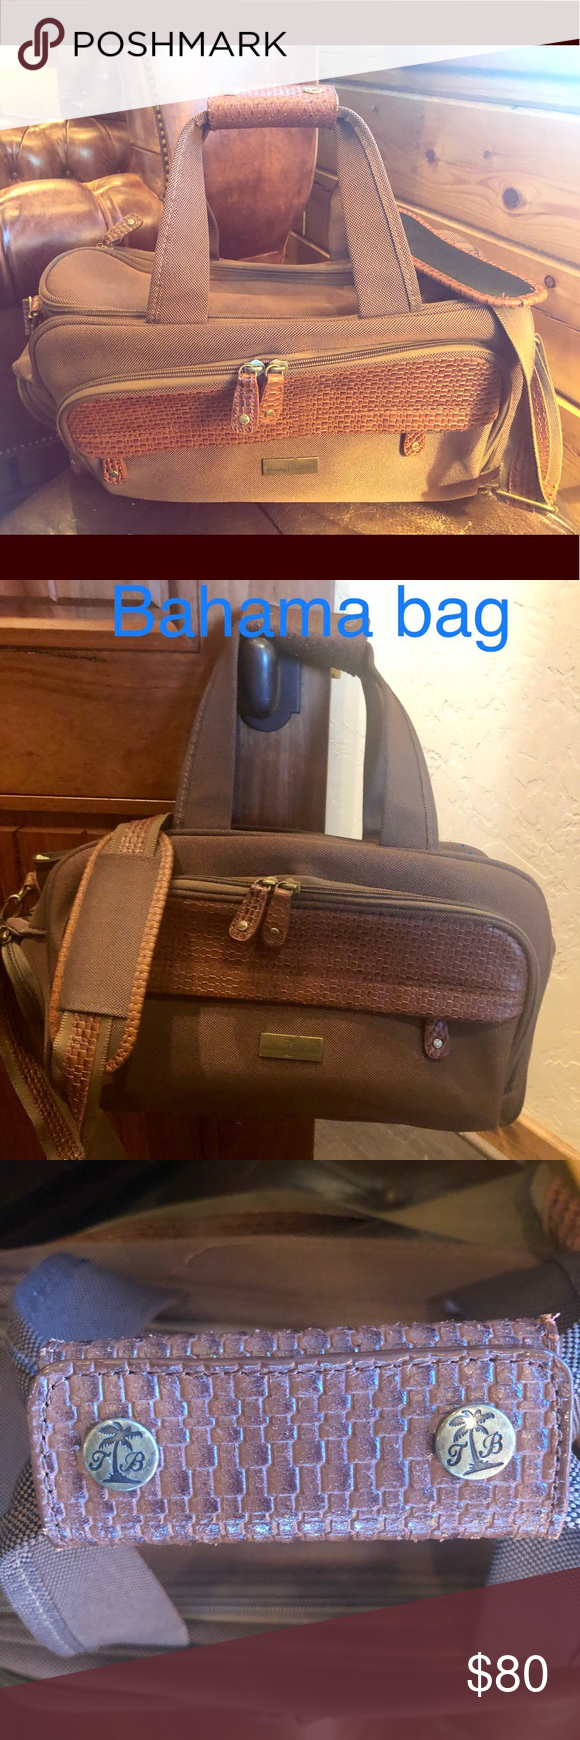 de5bc196e8e8 New Tommy Bahama Overnight Bag Very Classy bag with T.B. Print throughout  the inside